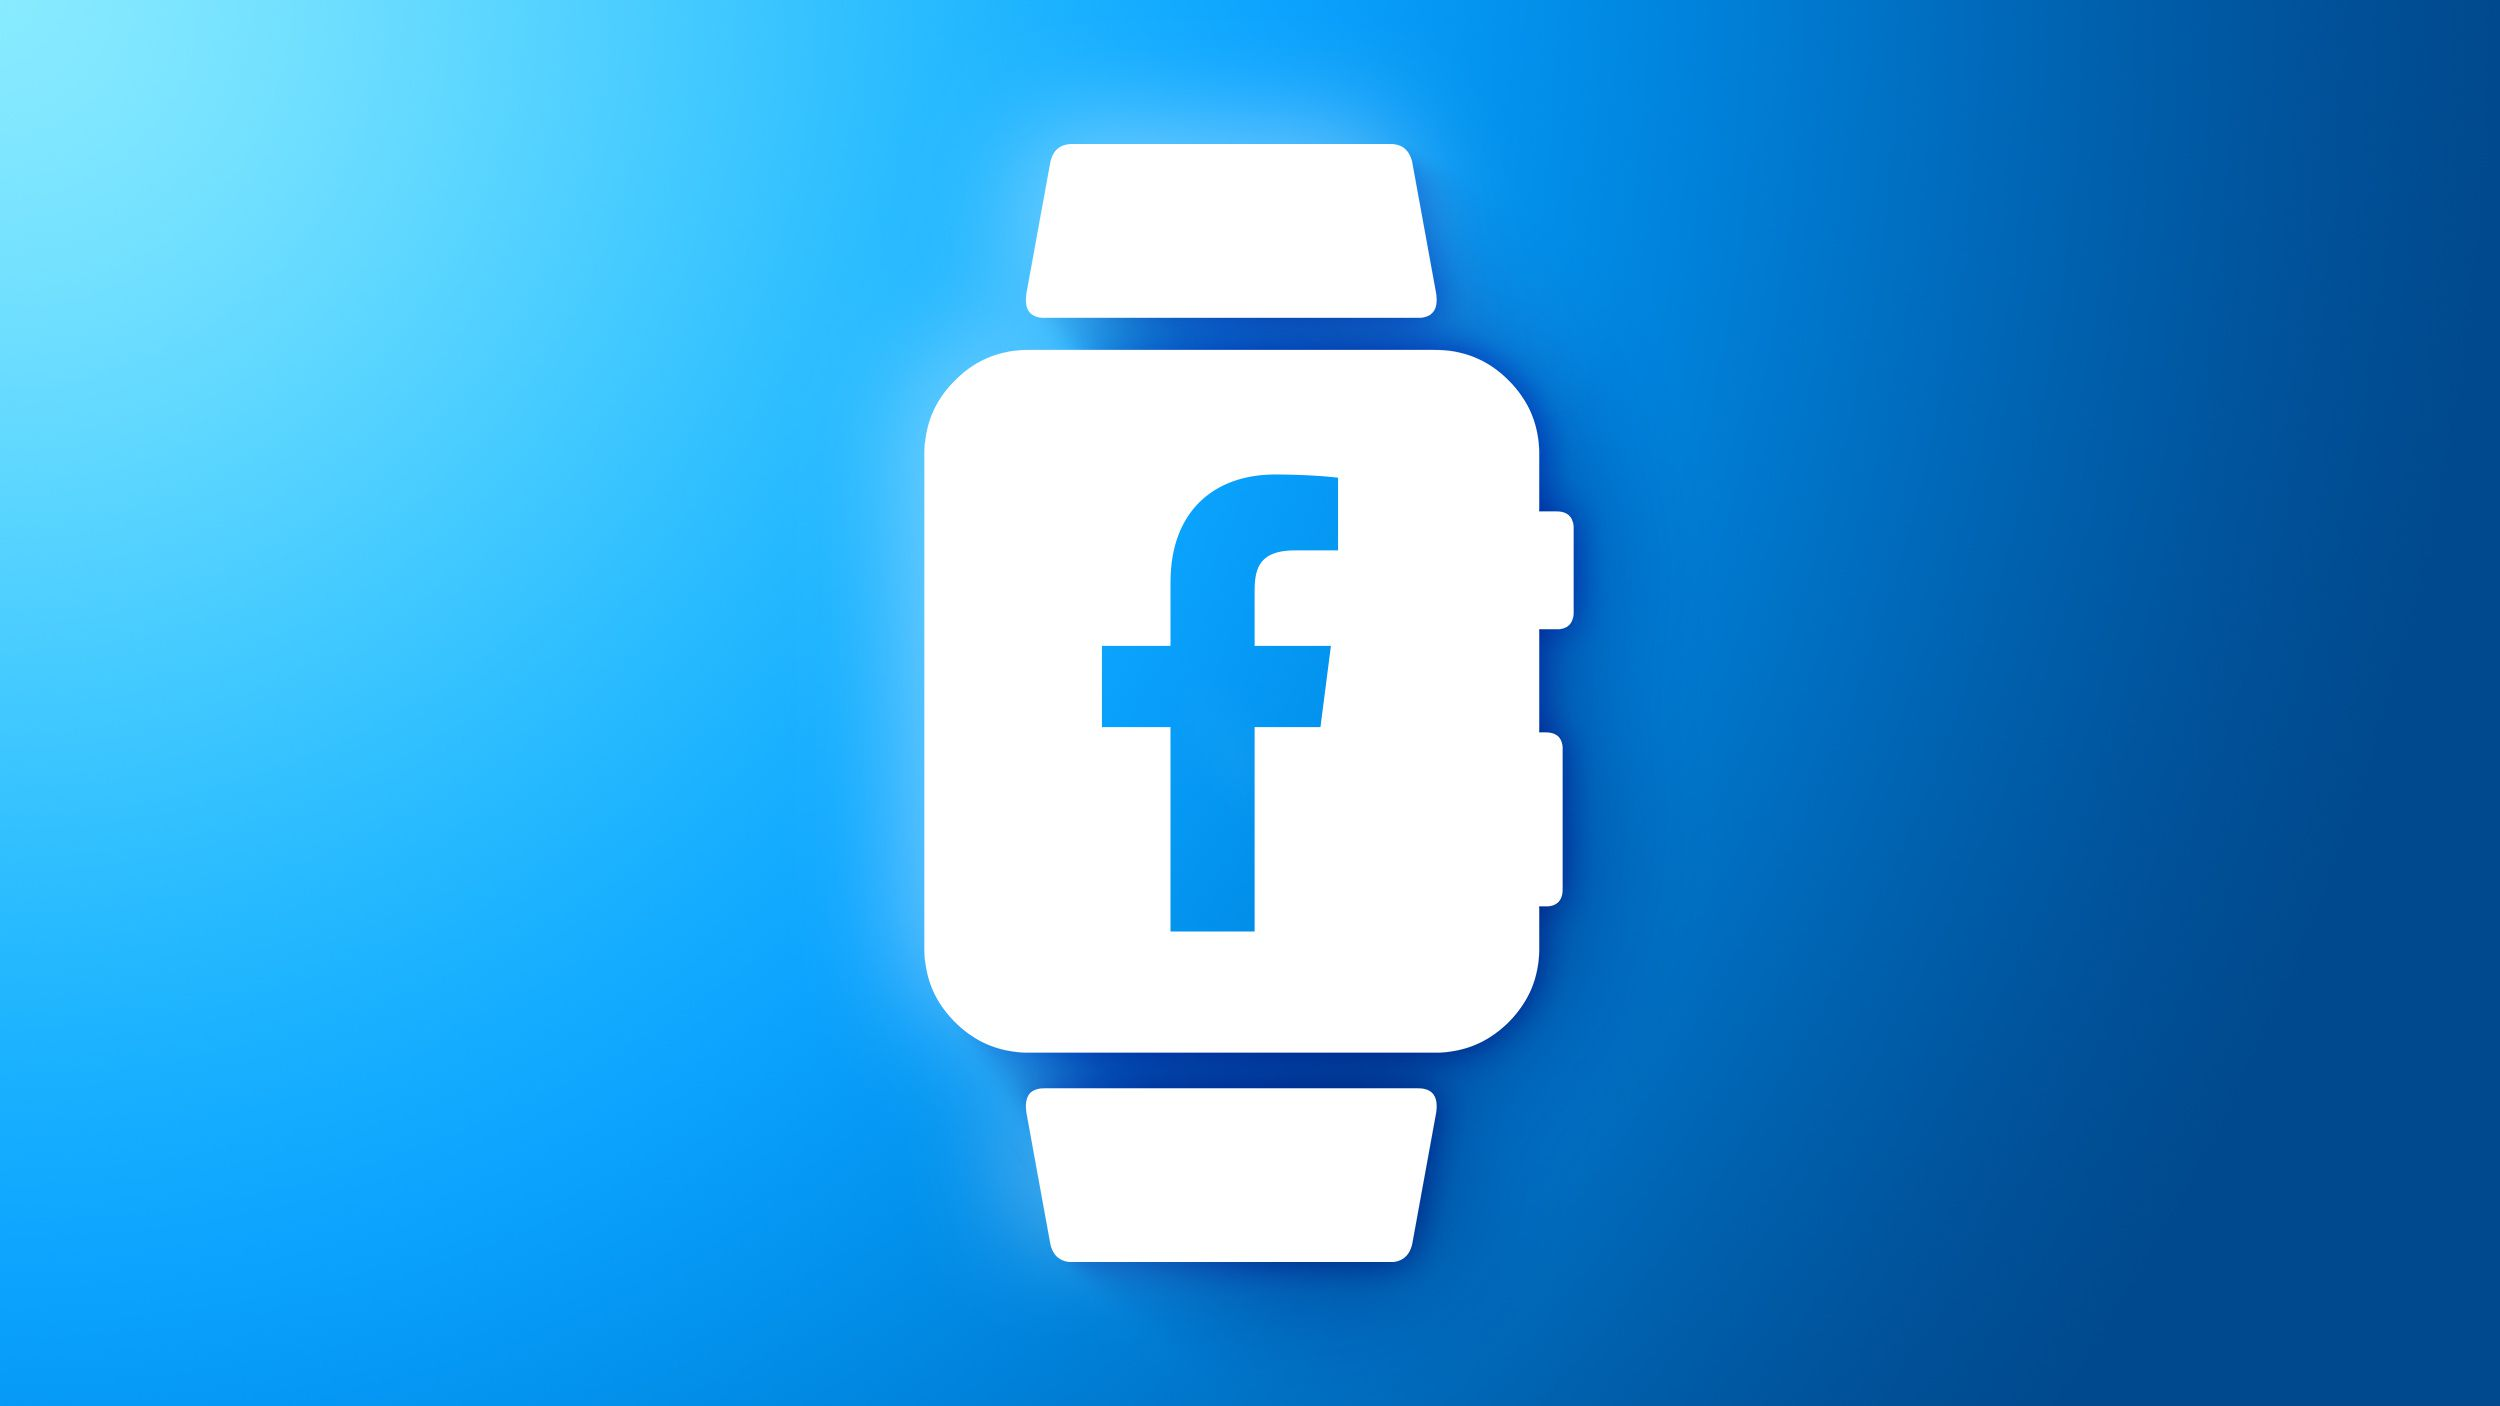 Facebook Working on Smart Watch With Detachable Display and Two Built-In Cameras